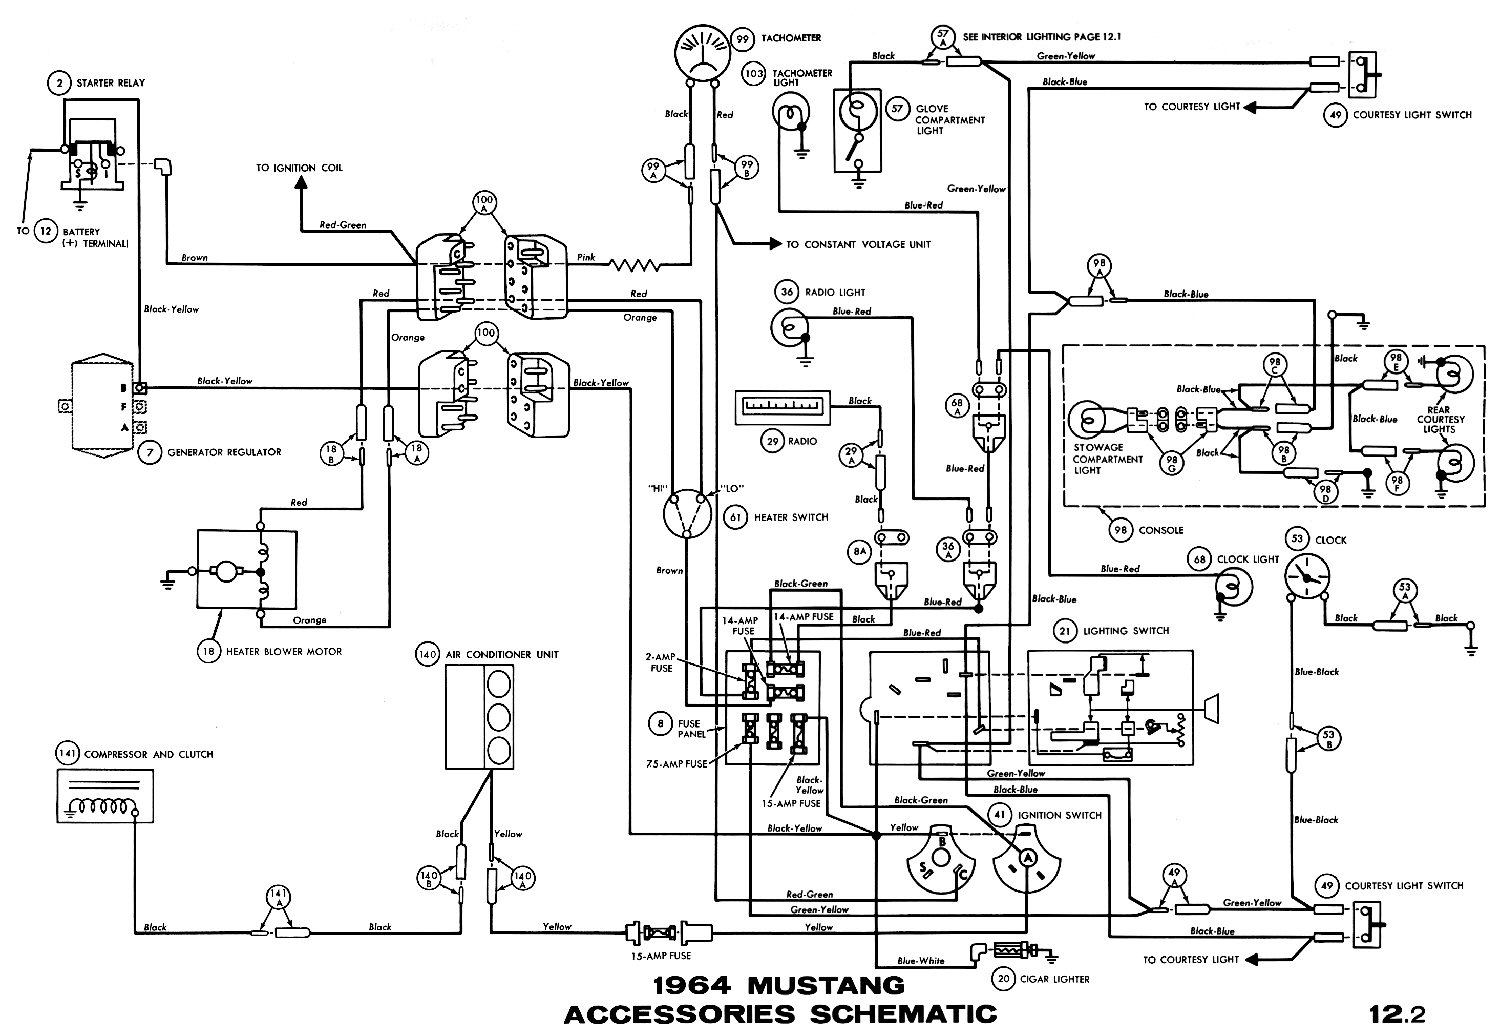 1964m 1964 mustang wiring diagrams average joe restoration ford mustang wiring diagram at gsmx.co